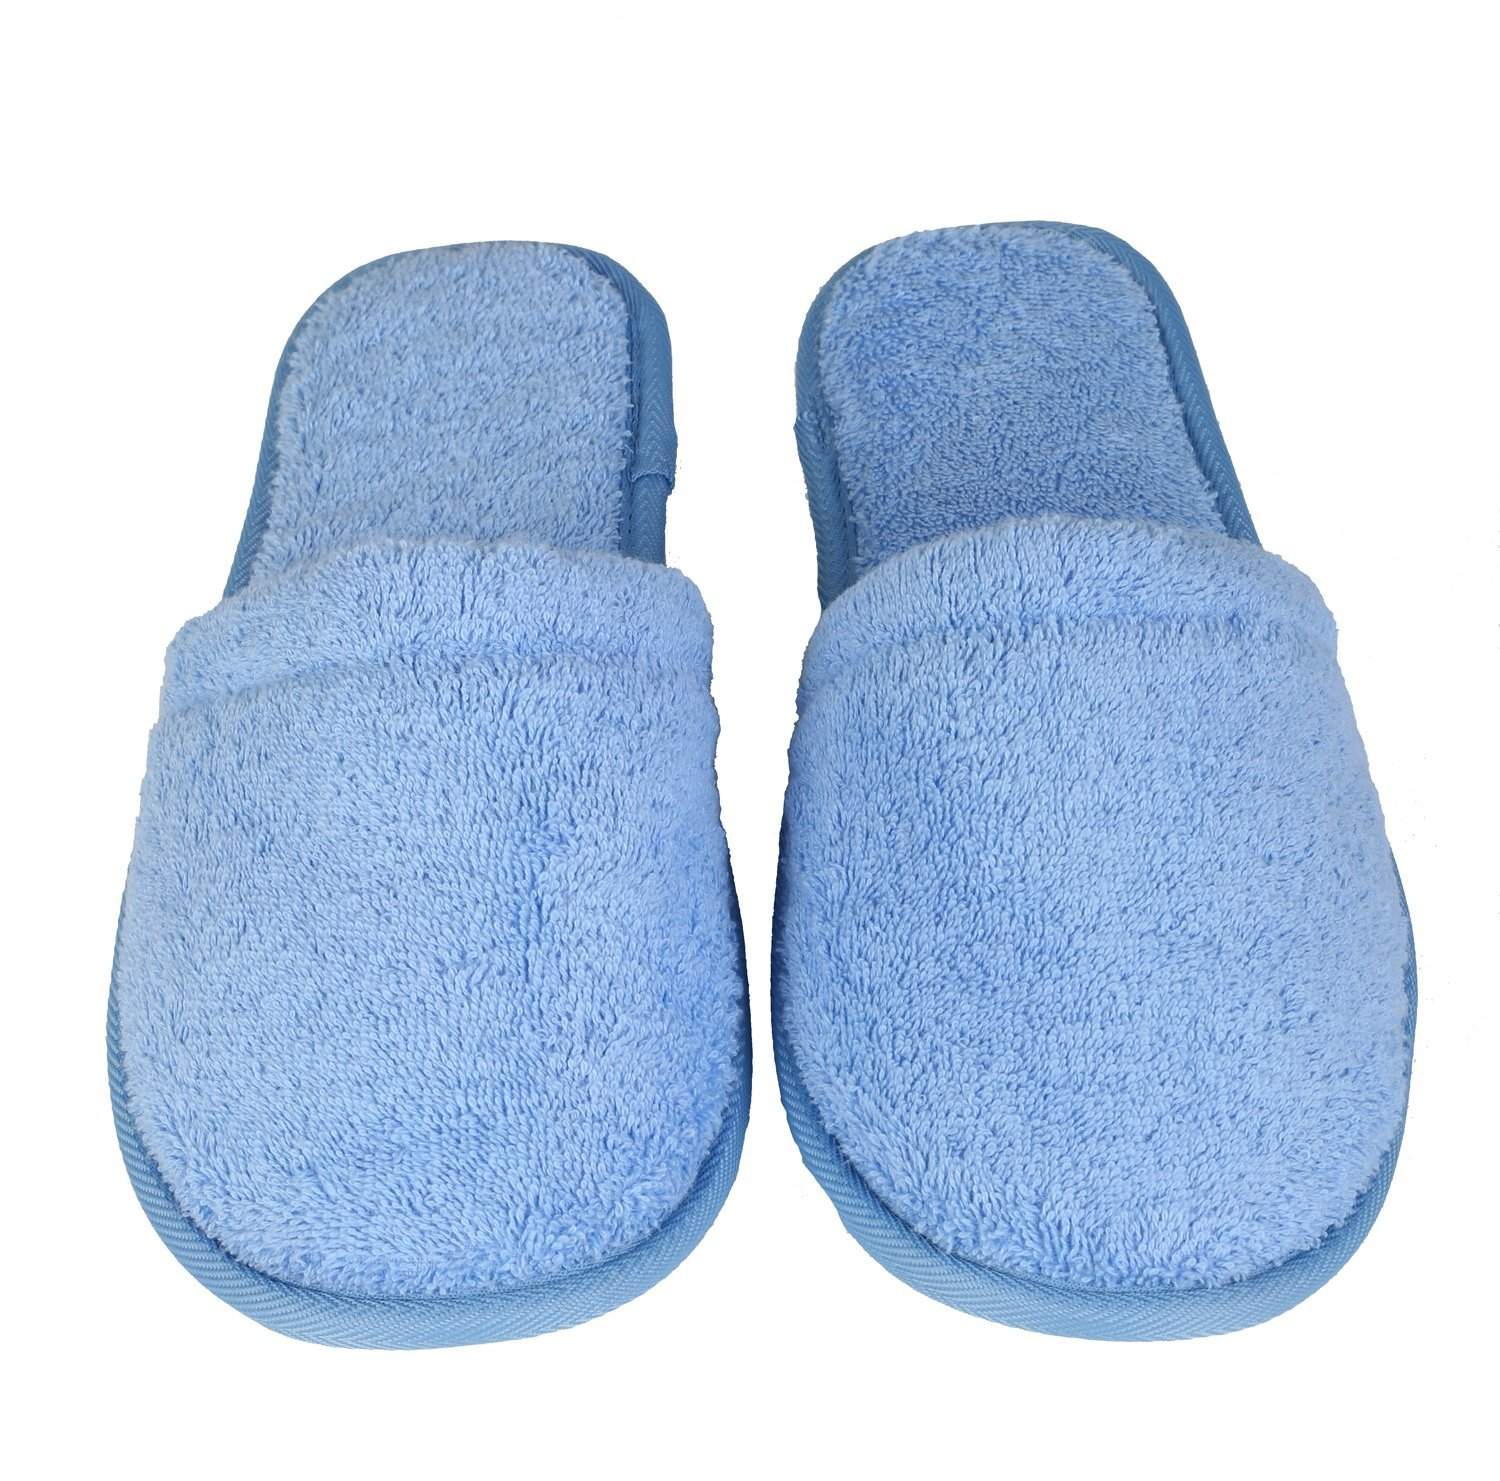 a28c367f4c5 Amazon.com  Arus Women s Turkish Terry Cotton Cloth Spa Slippers One Size  Fits Most